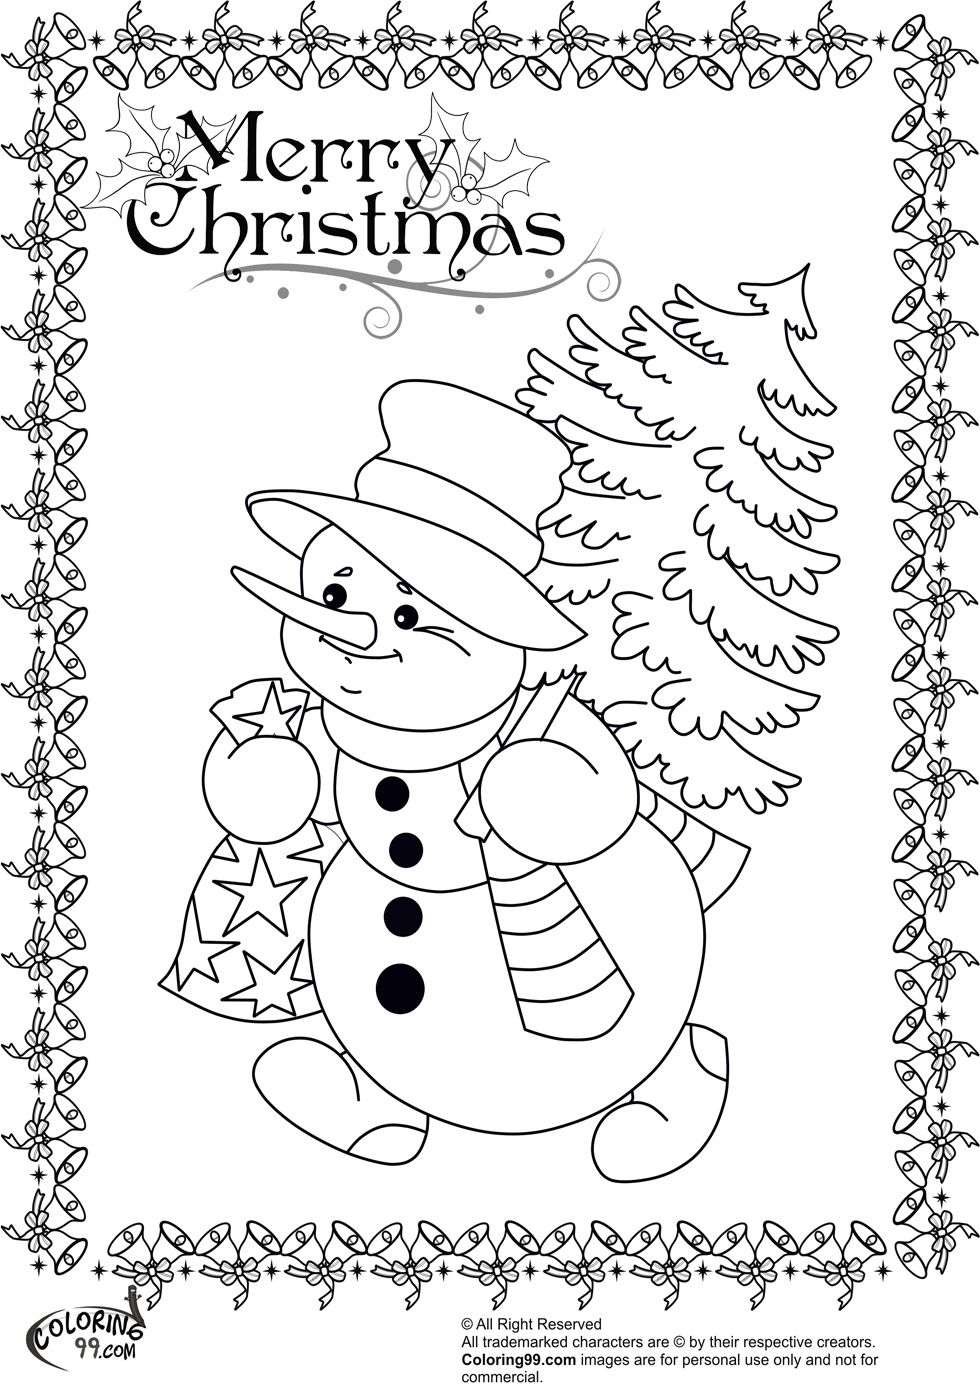 Snowman Pictures To Color - - Yahoo Image Search Results | Mooshi\'s ...